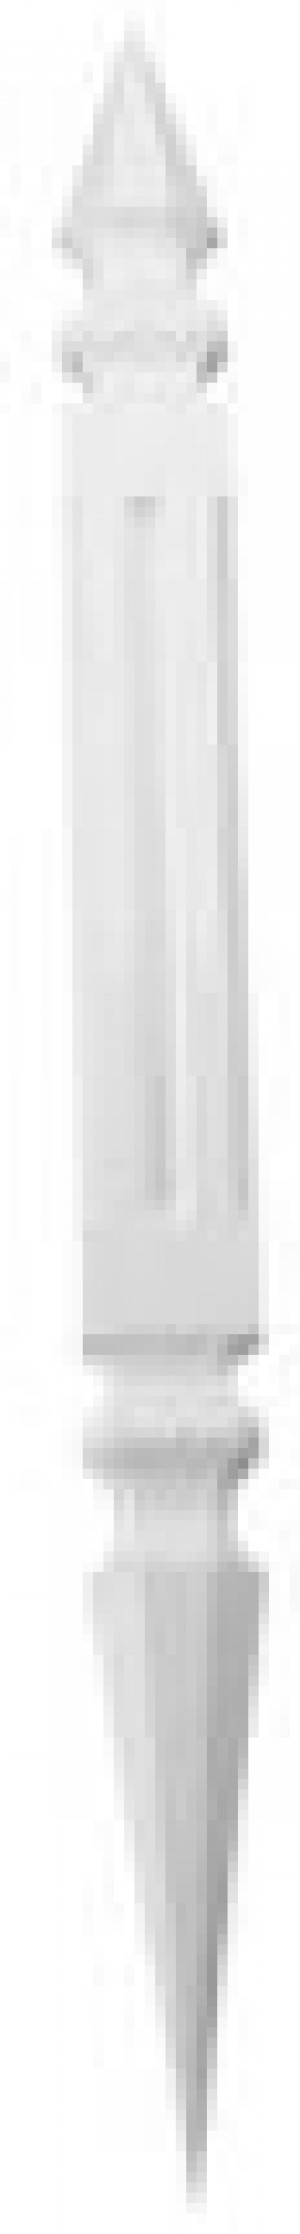 Decorative Roof Spire 3D 910mm White